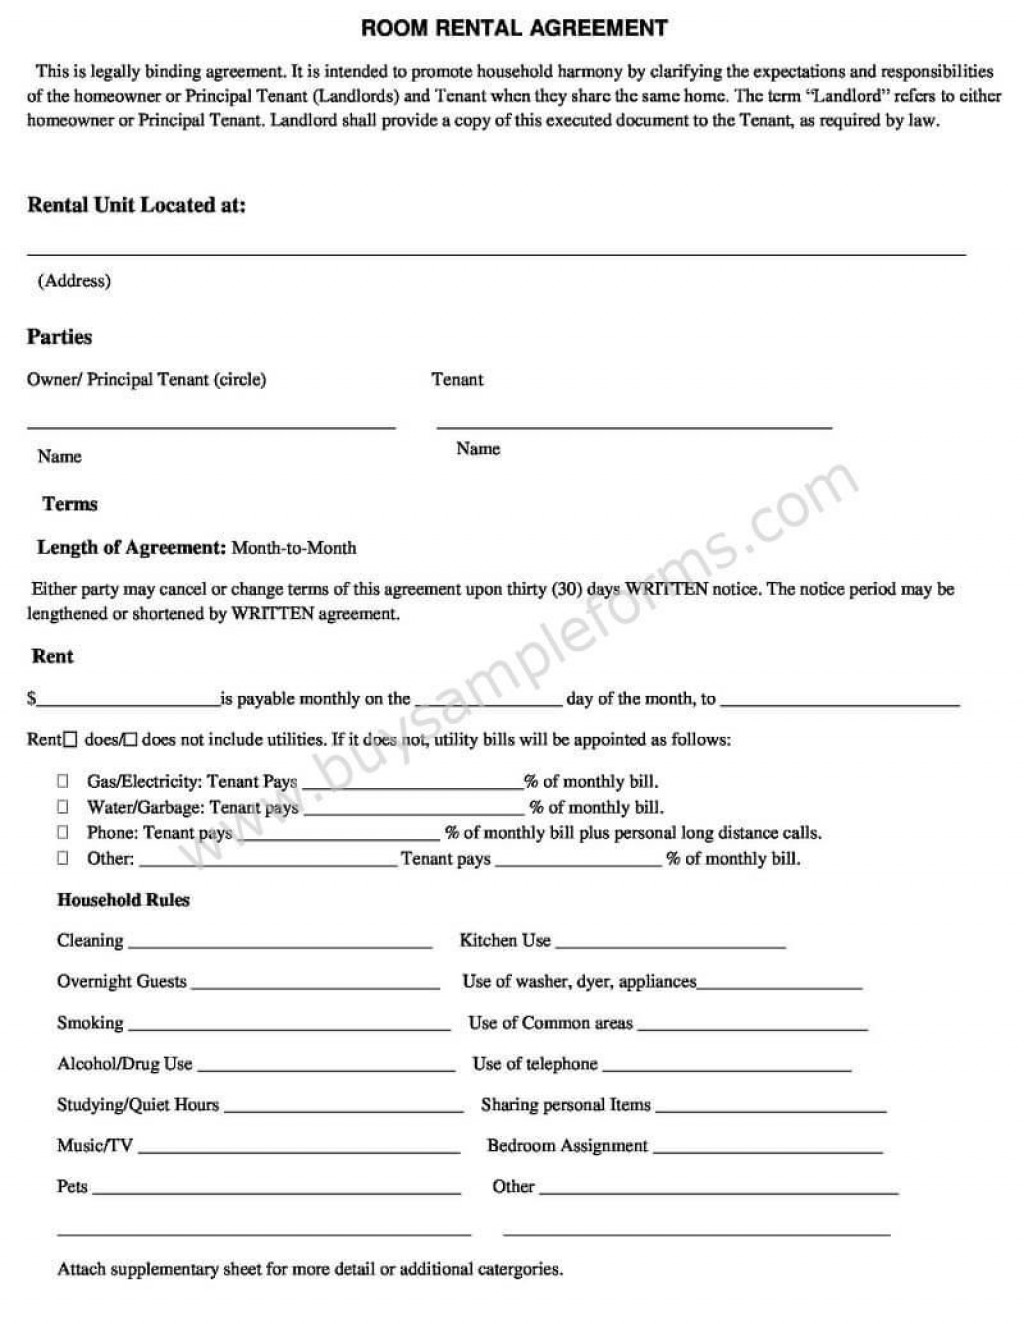 006 Impressive Sample House Rental Agreement Template Image  Contract LeaseLarge